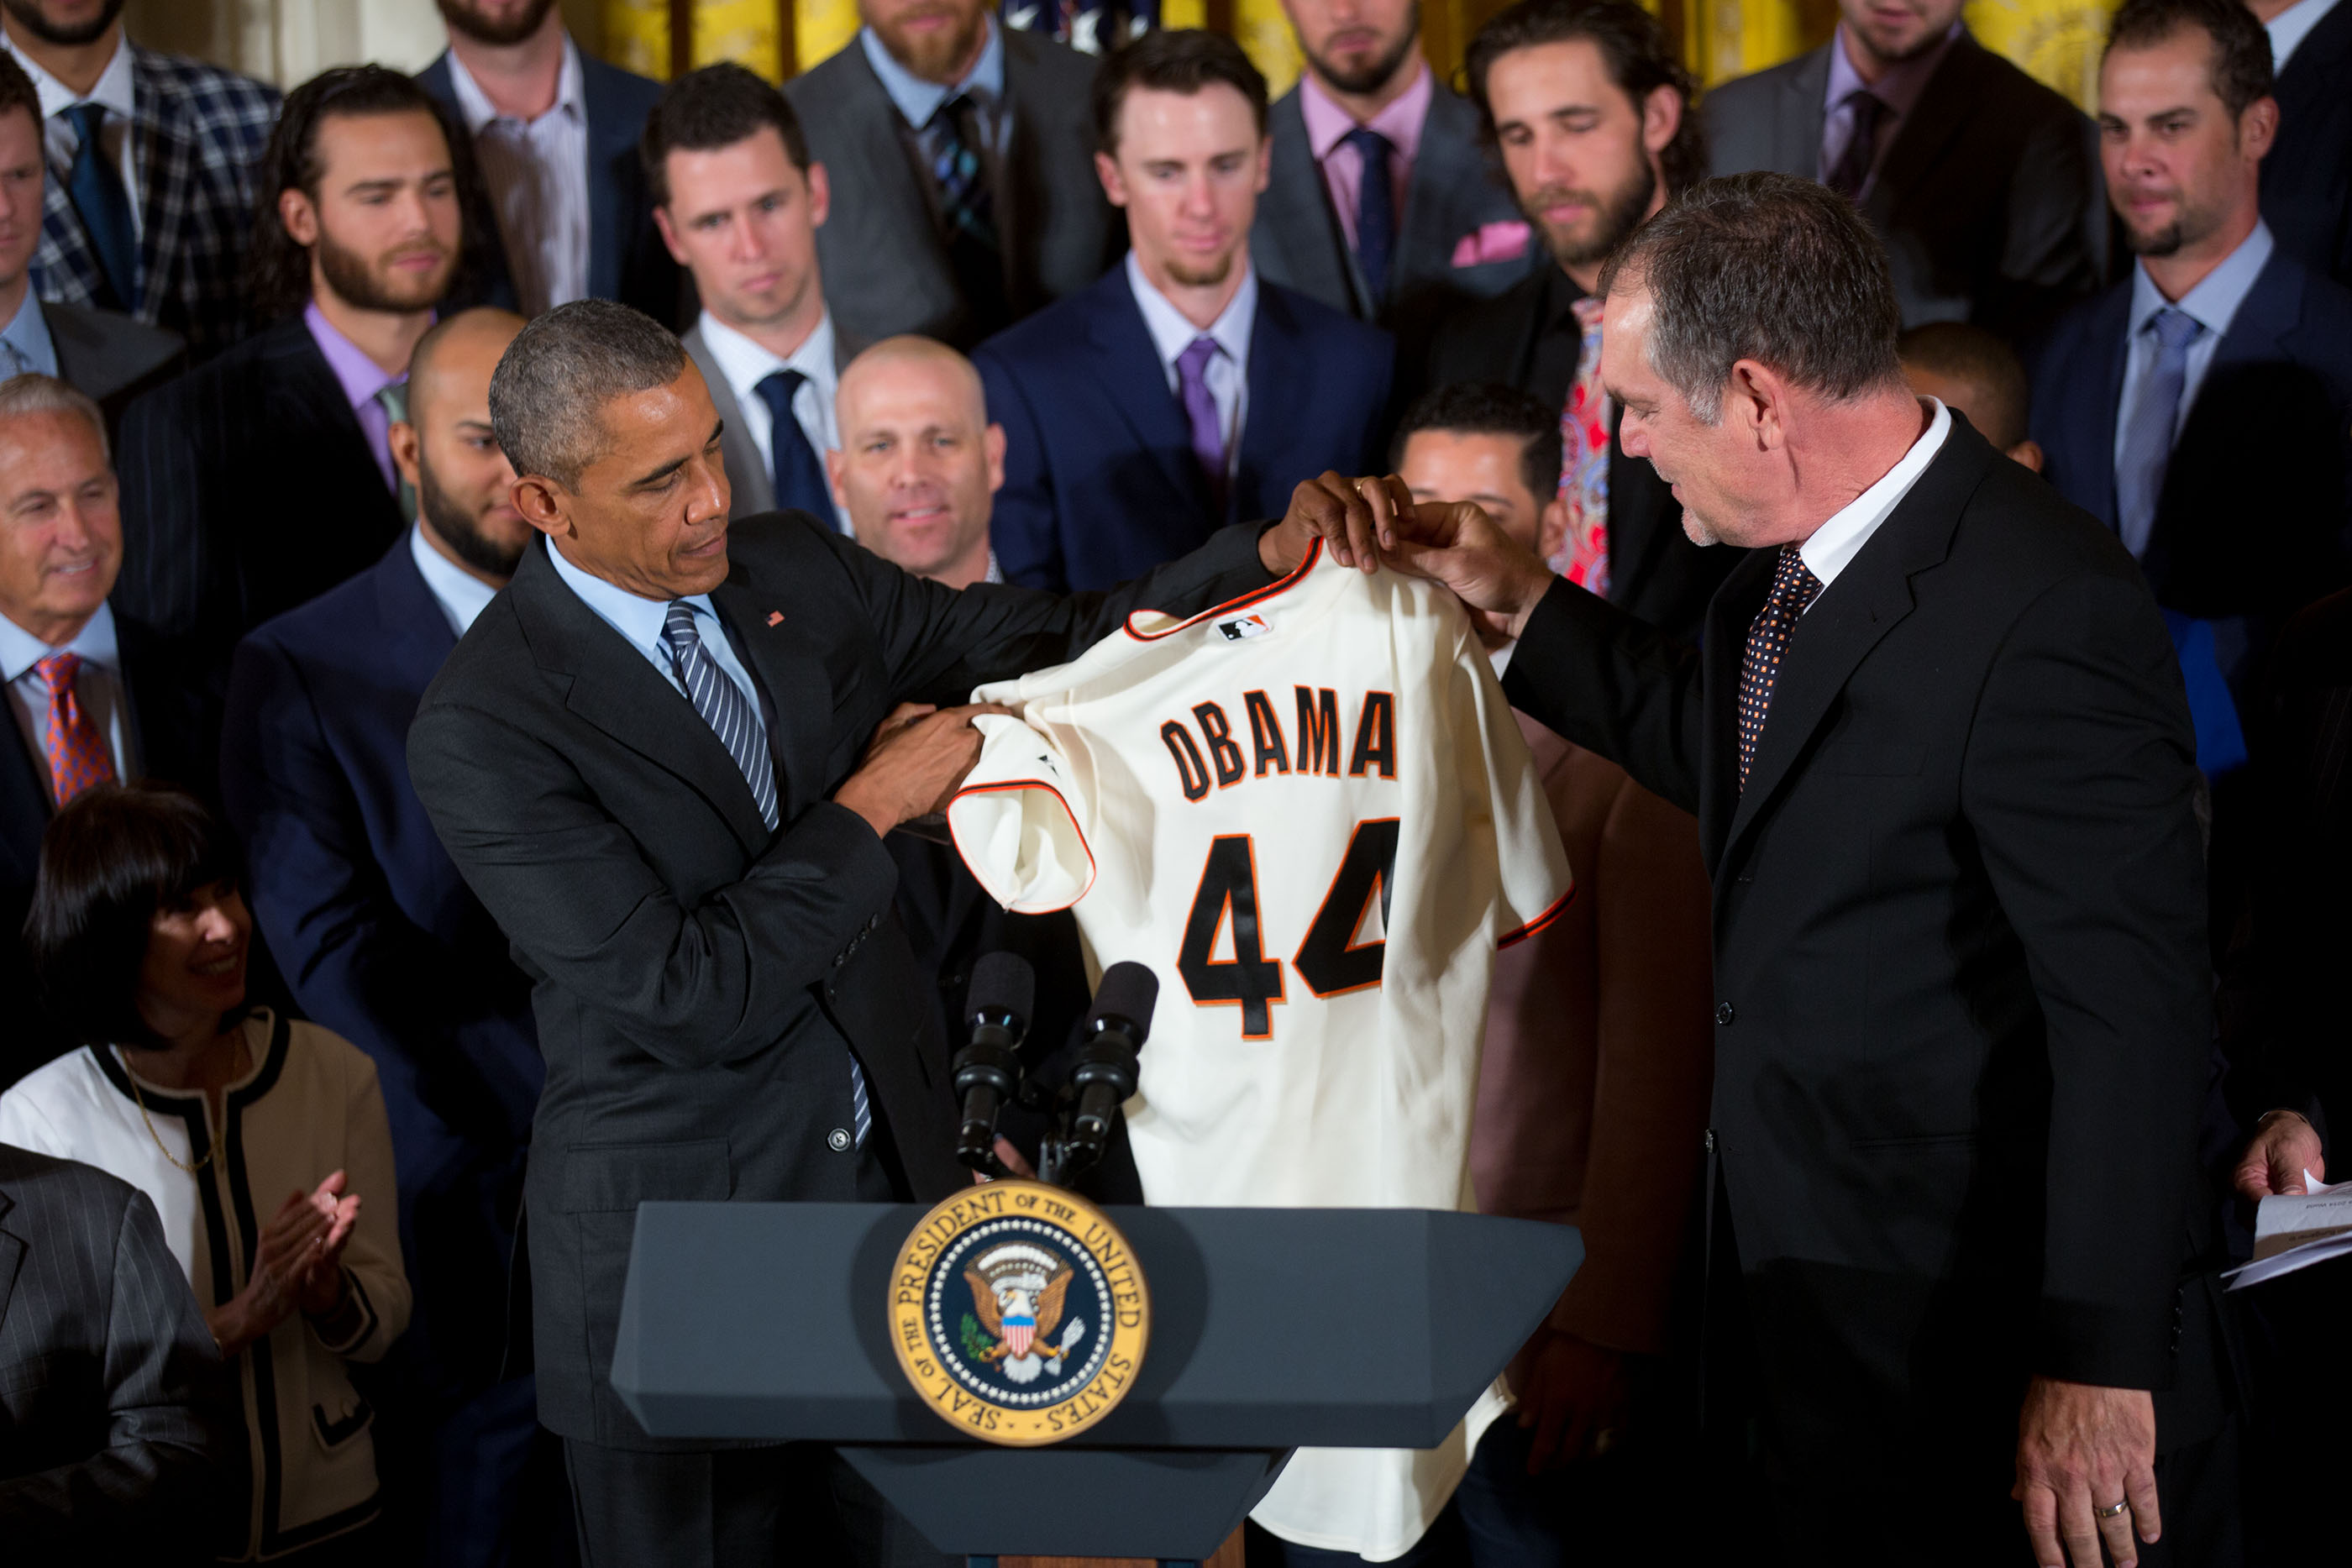 President Obama Holds a 2015 Giants Jersey